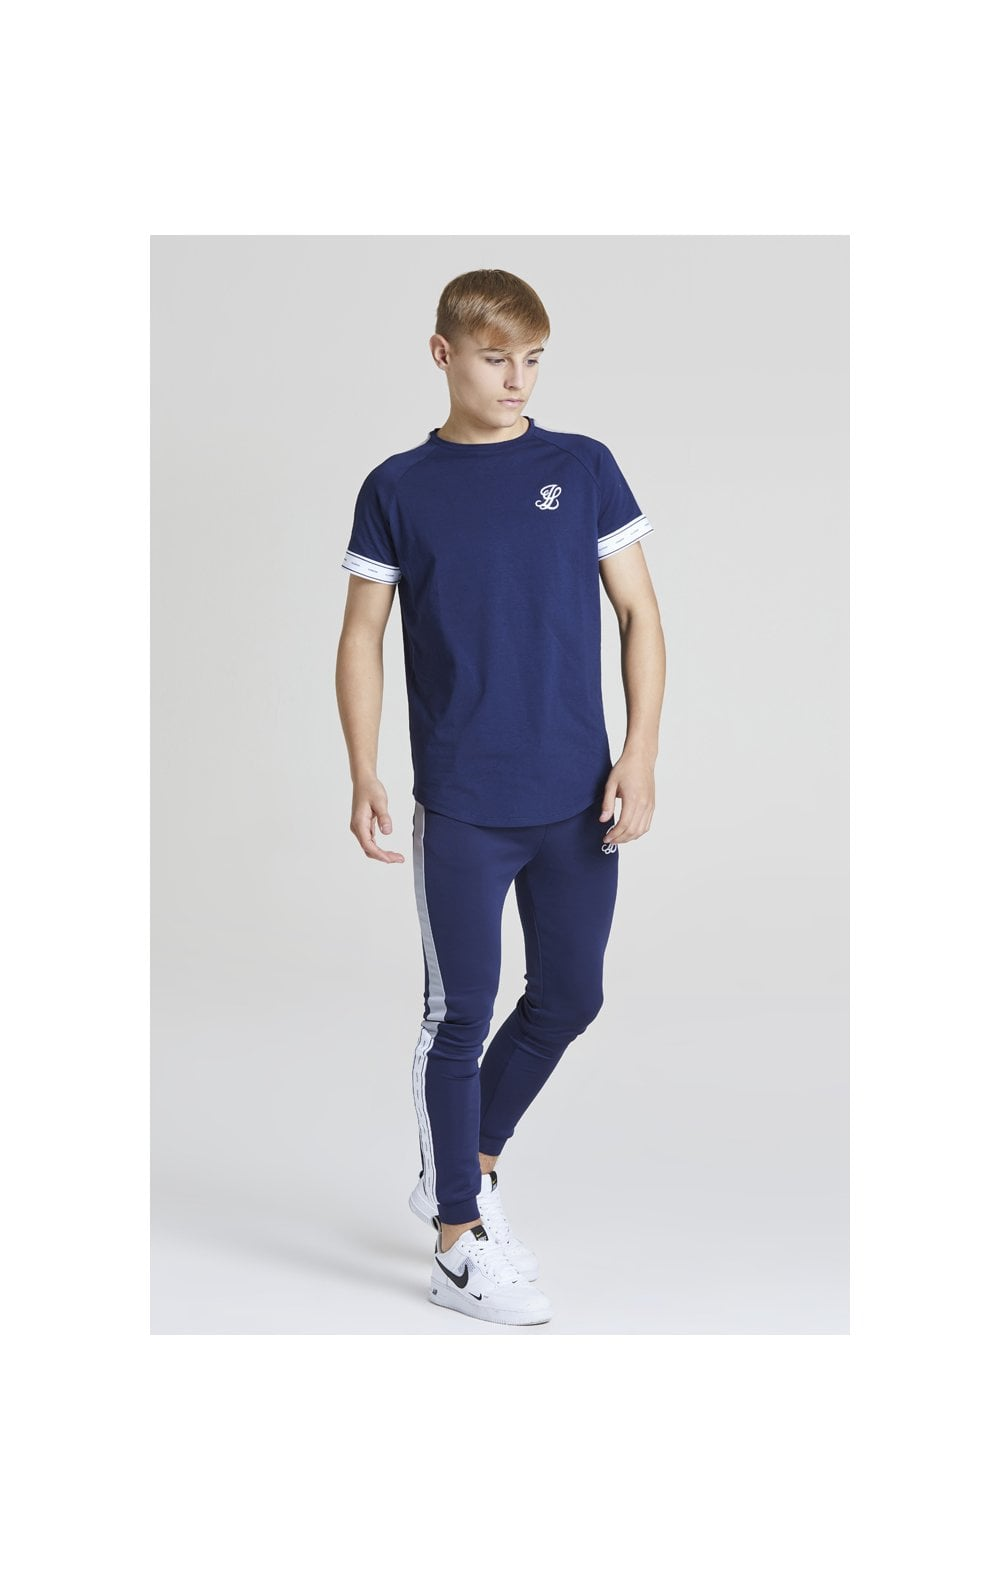 Illusive London Technical T-Shirt Platten - Marineblau und Grau (3)